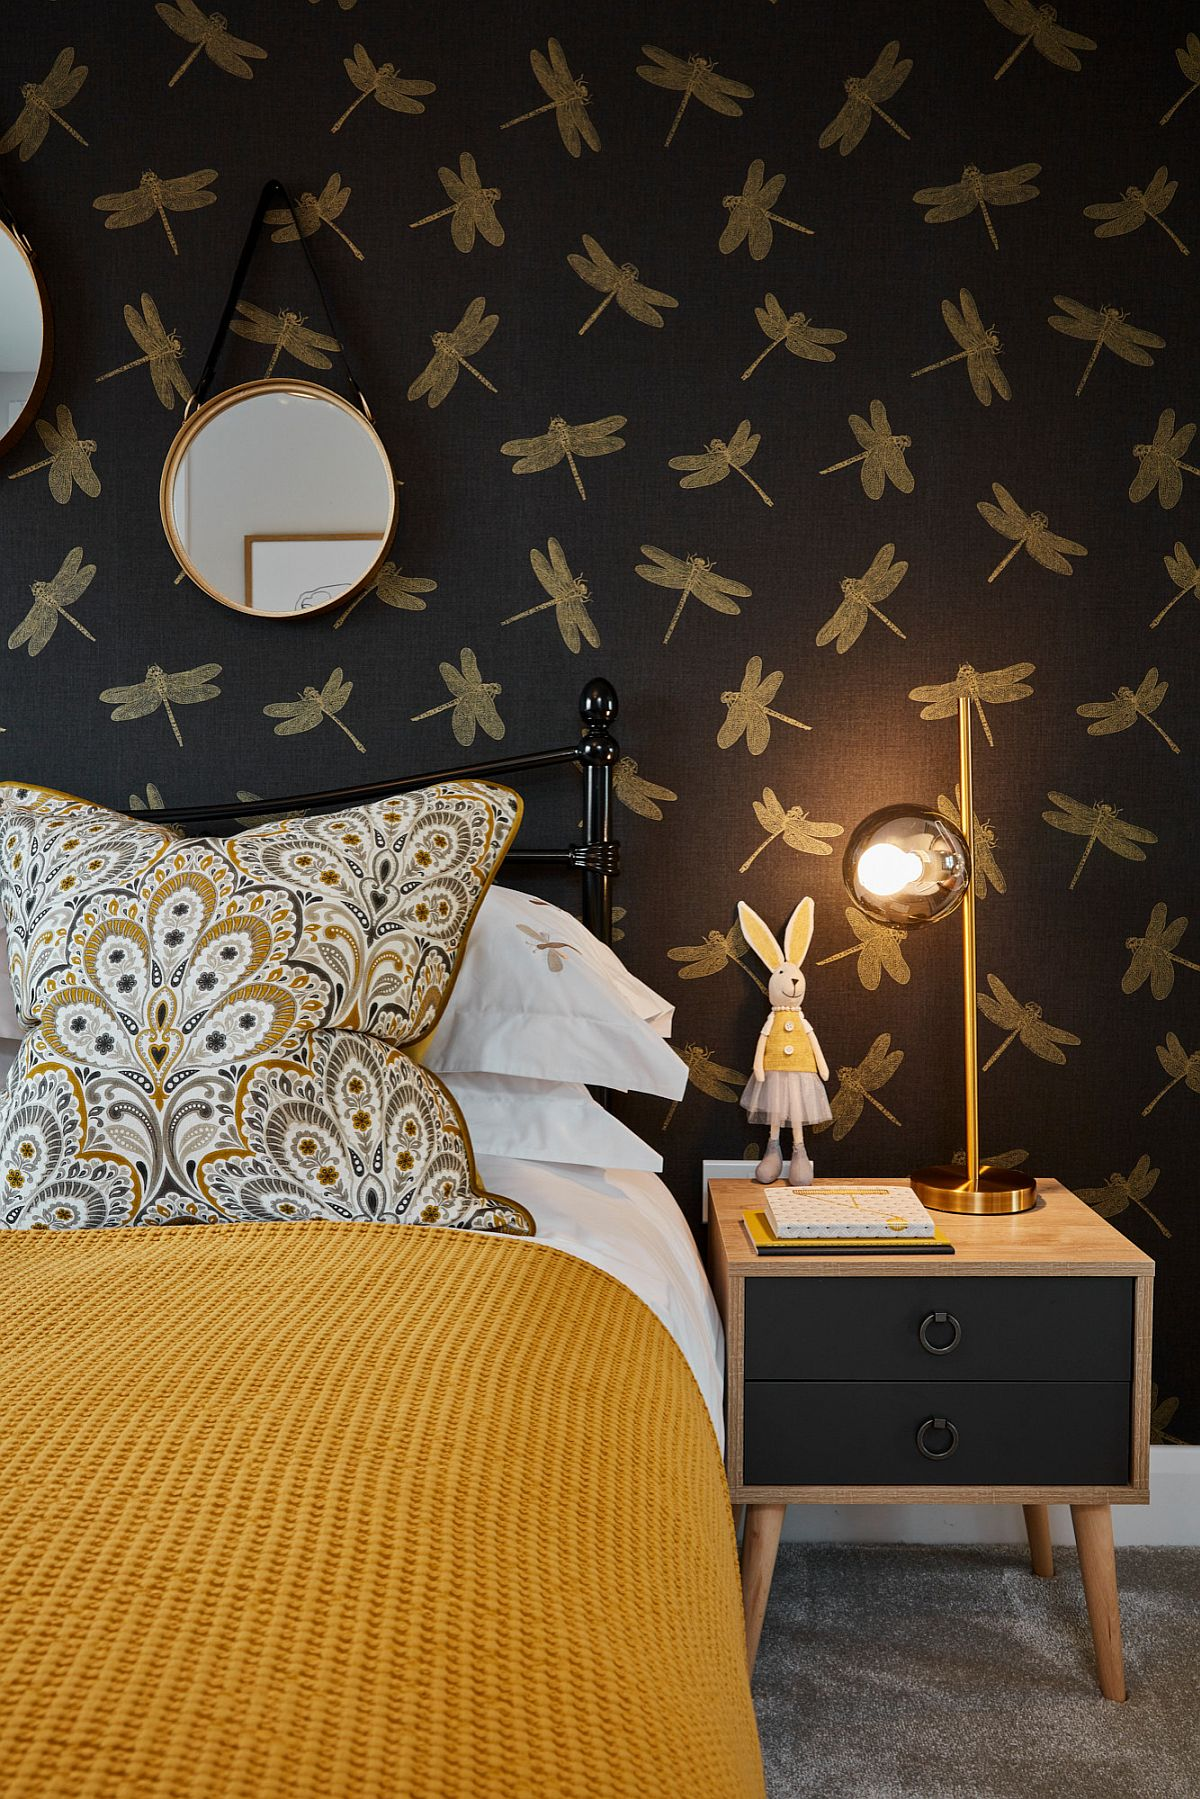 Finding the right wallpaper for the contemporary girls' room in yellow and black